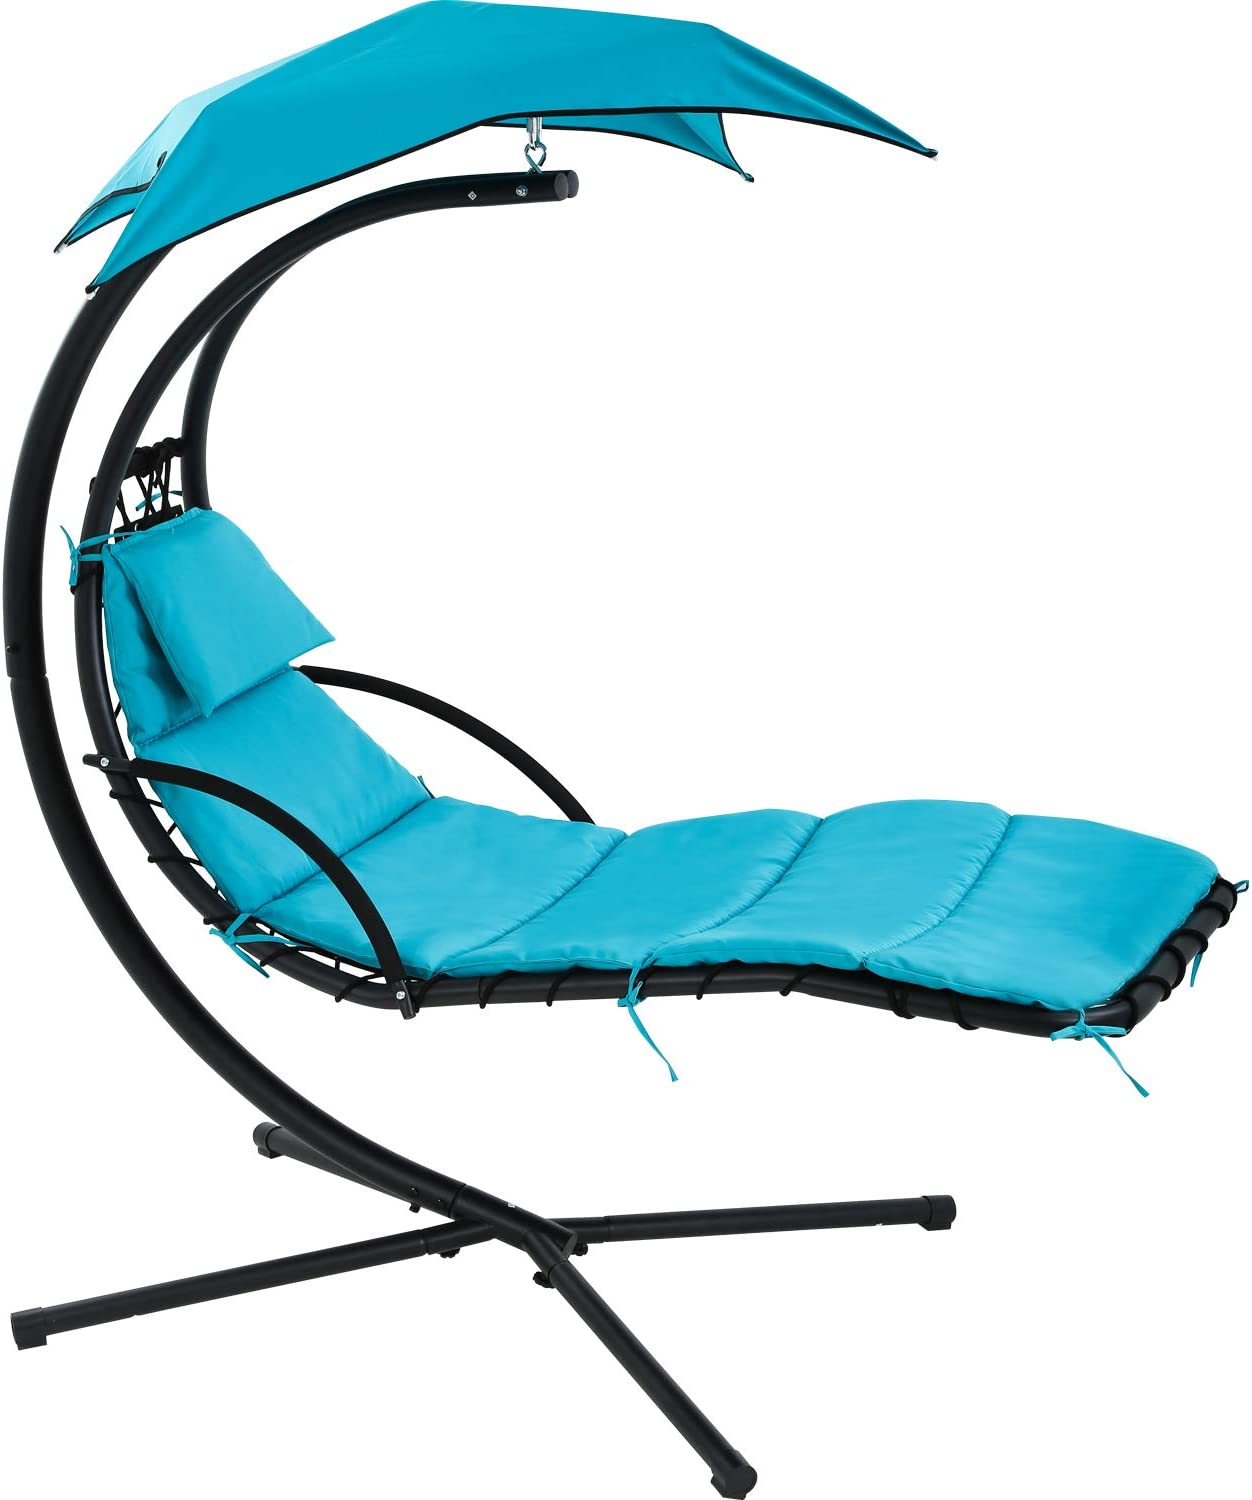 Vnewone Manufacturer regenerated product Patio Chair Hammock Stand Adult In a popularity Outdoor for Swings